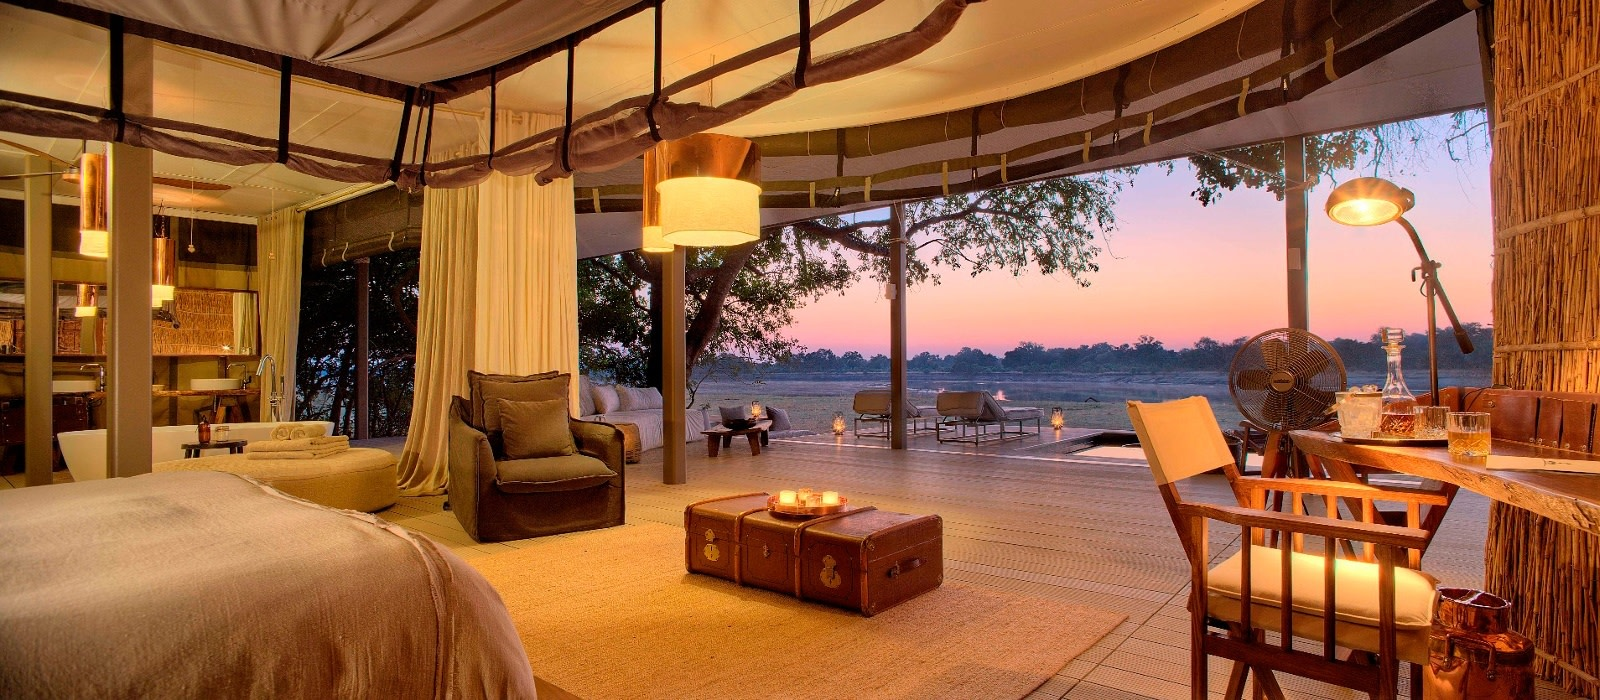 Hotel Chinzombo Lodge Sambia